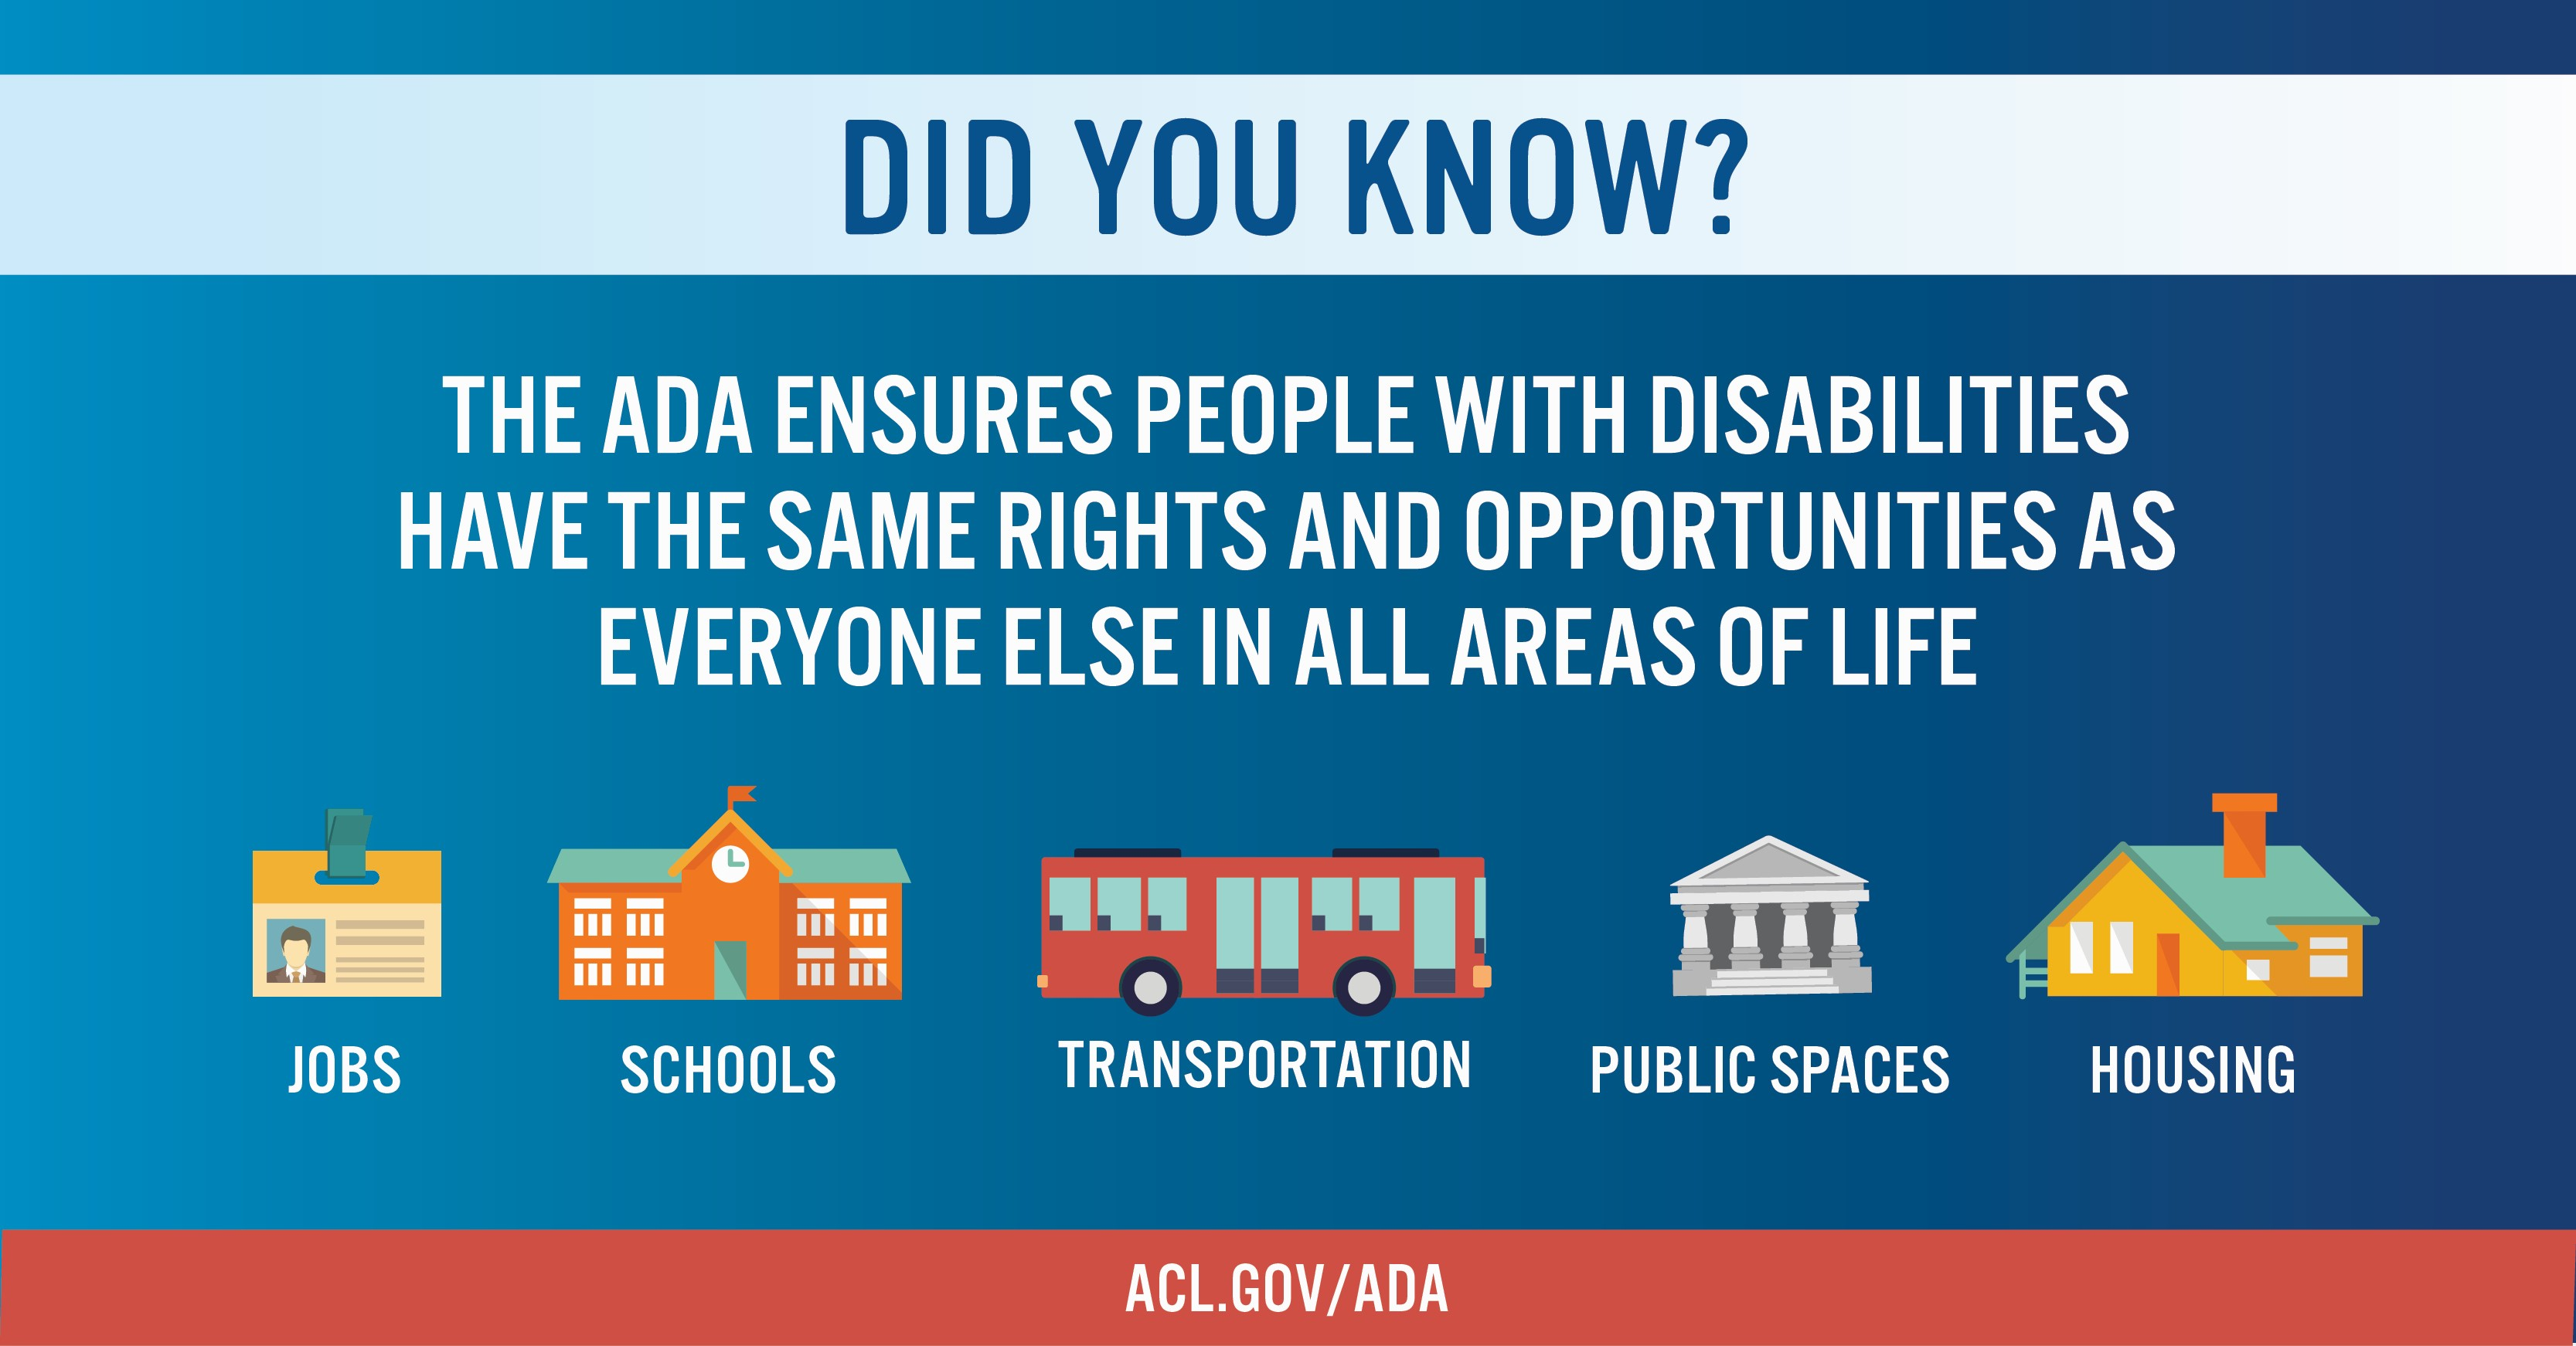 The ADA ensures people with disabilities have the same opportunities in all areas of life